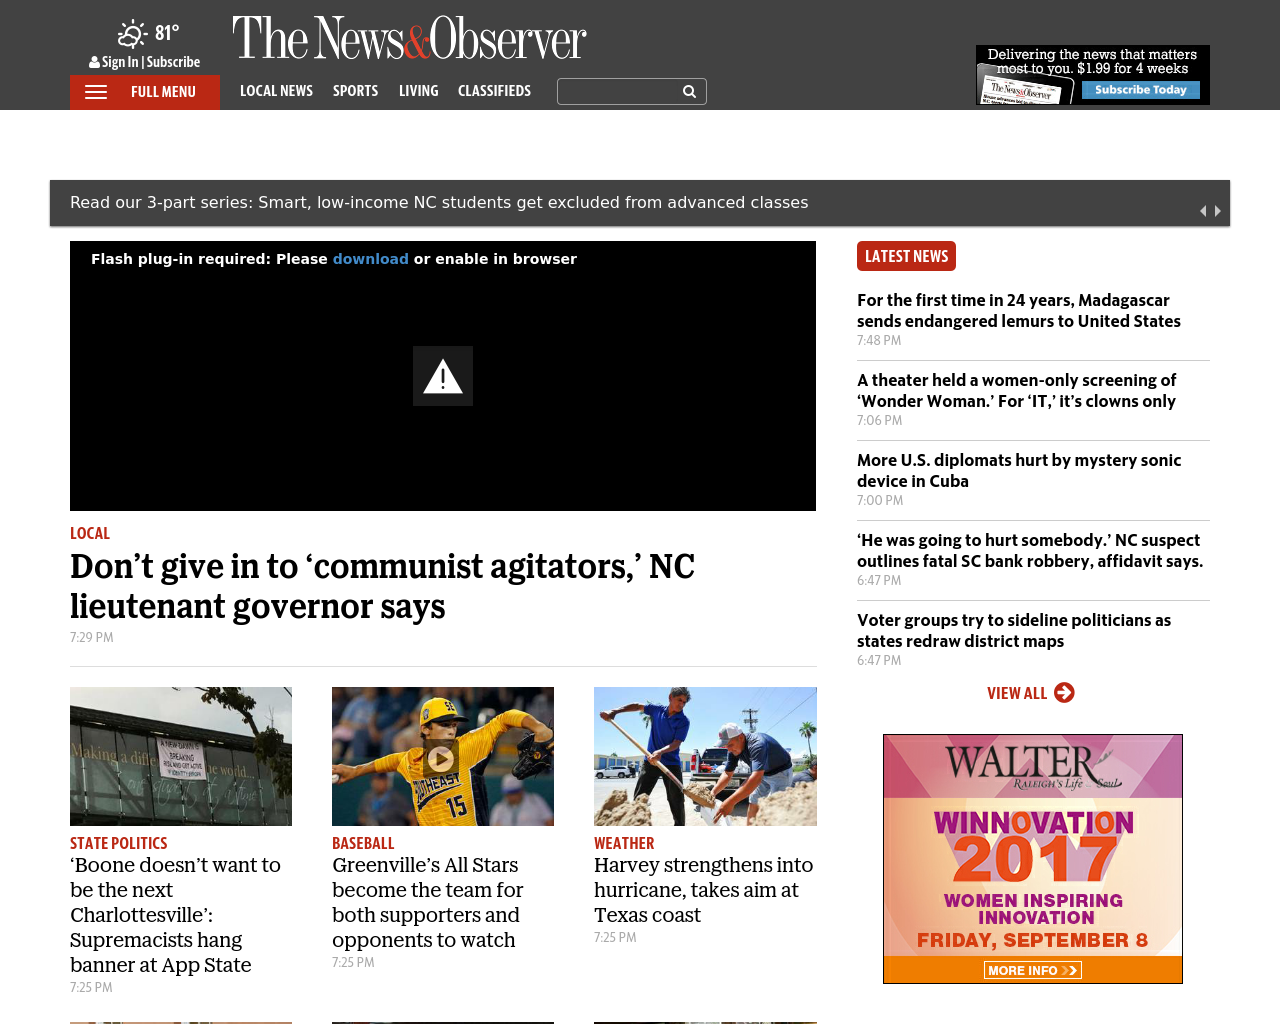 The-News-&-Observer-Advertising-Reviews-Pricing